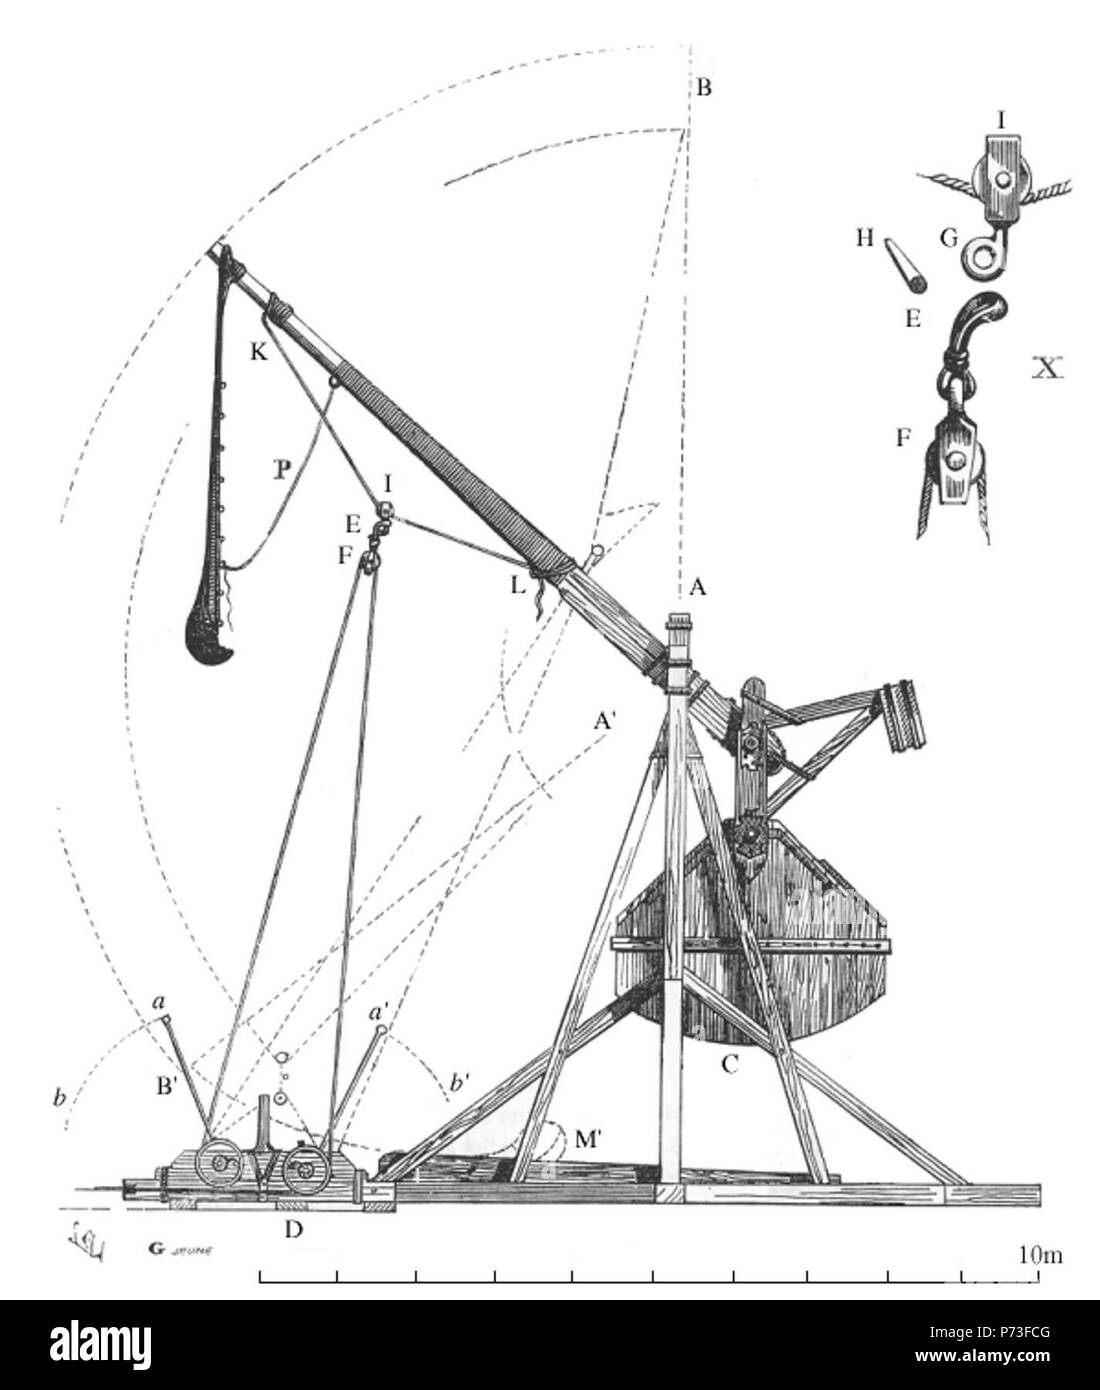 hight resolution of side view of counterweight trebuchet